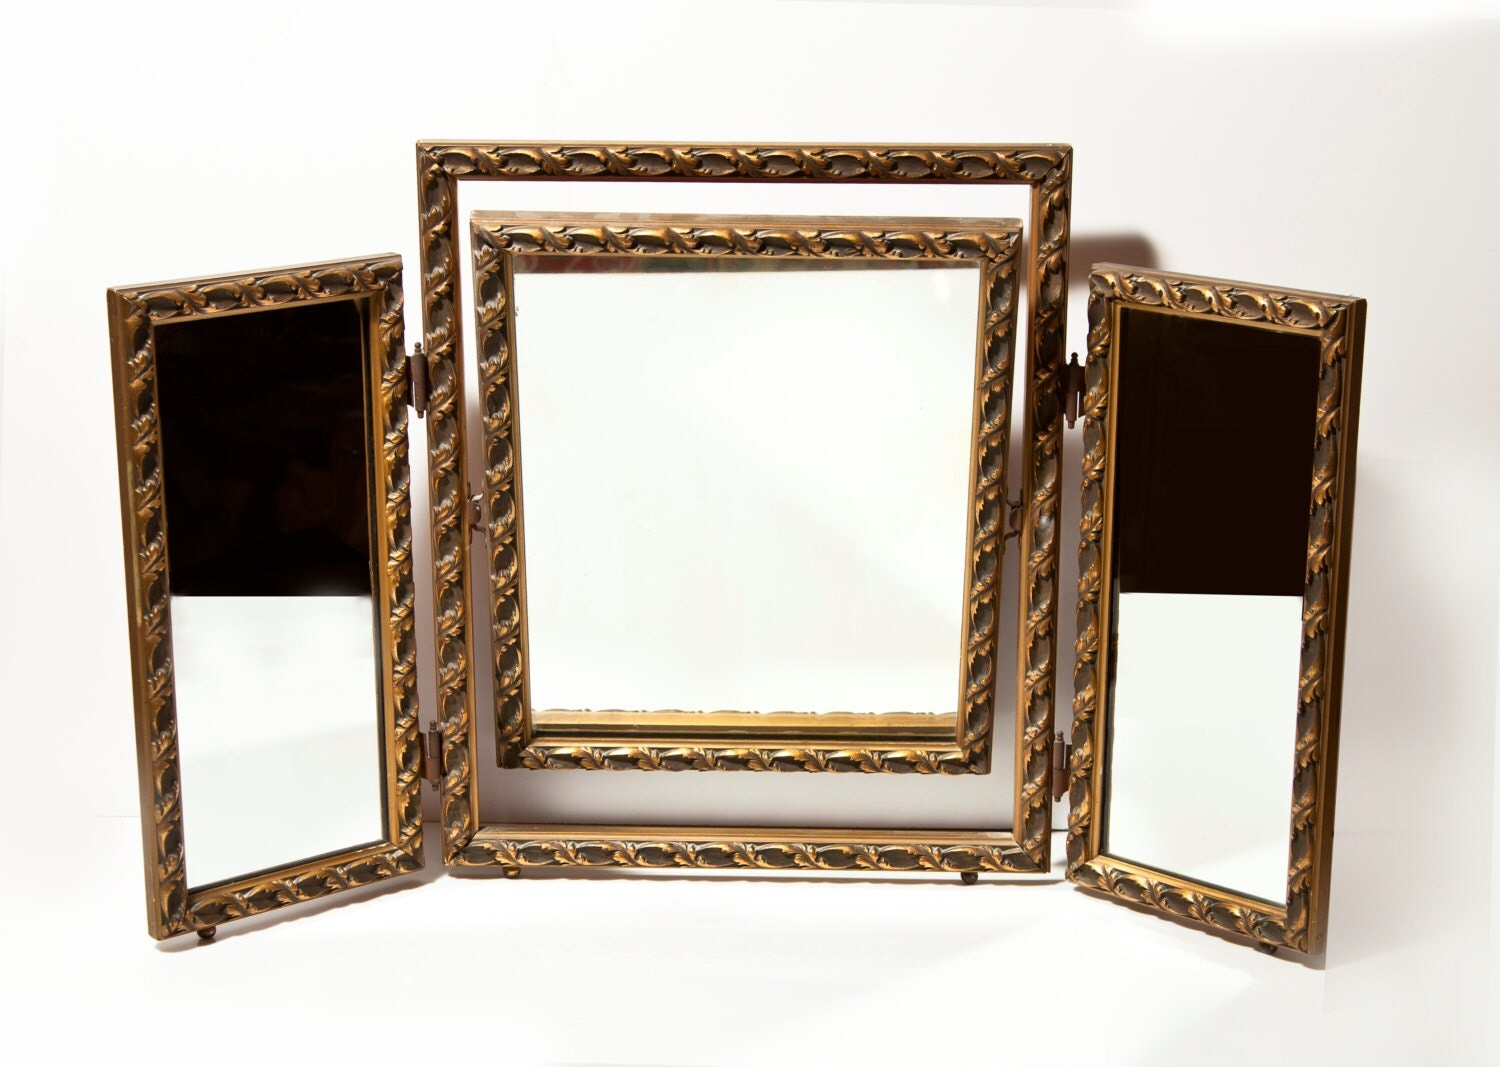 antique tri fold vanity mirror by raminandsons on etsy. Black Bedroom Furniture Sets. Home Design Ideas